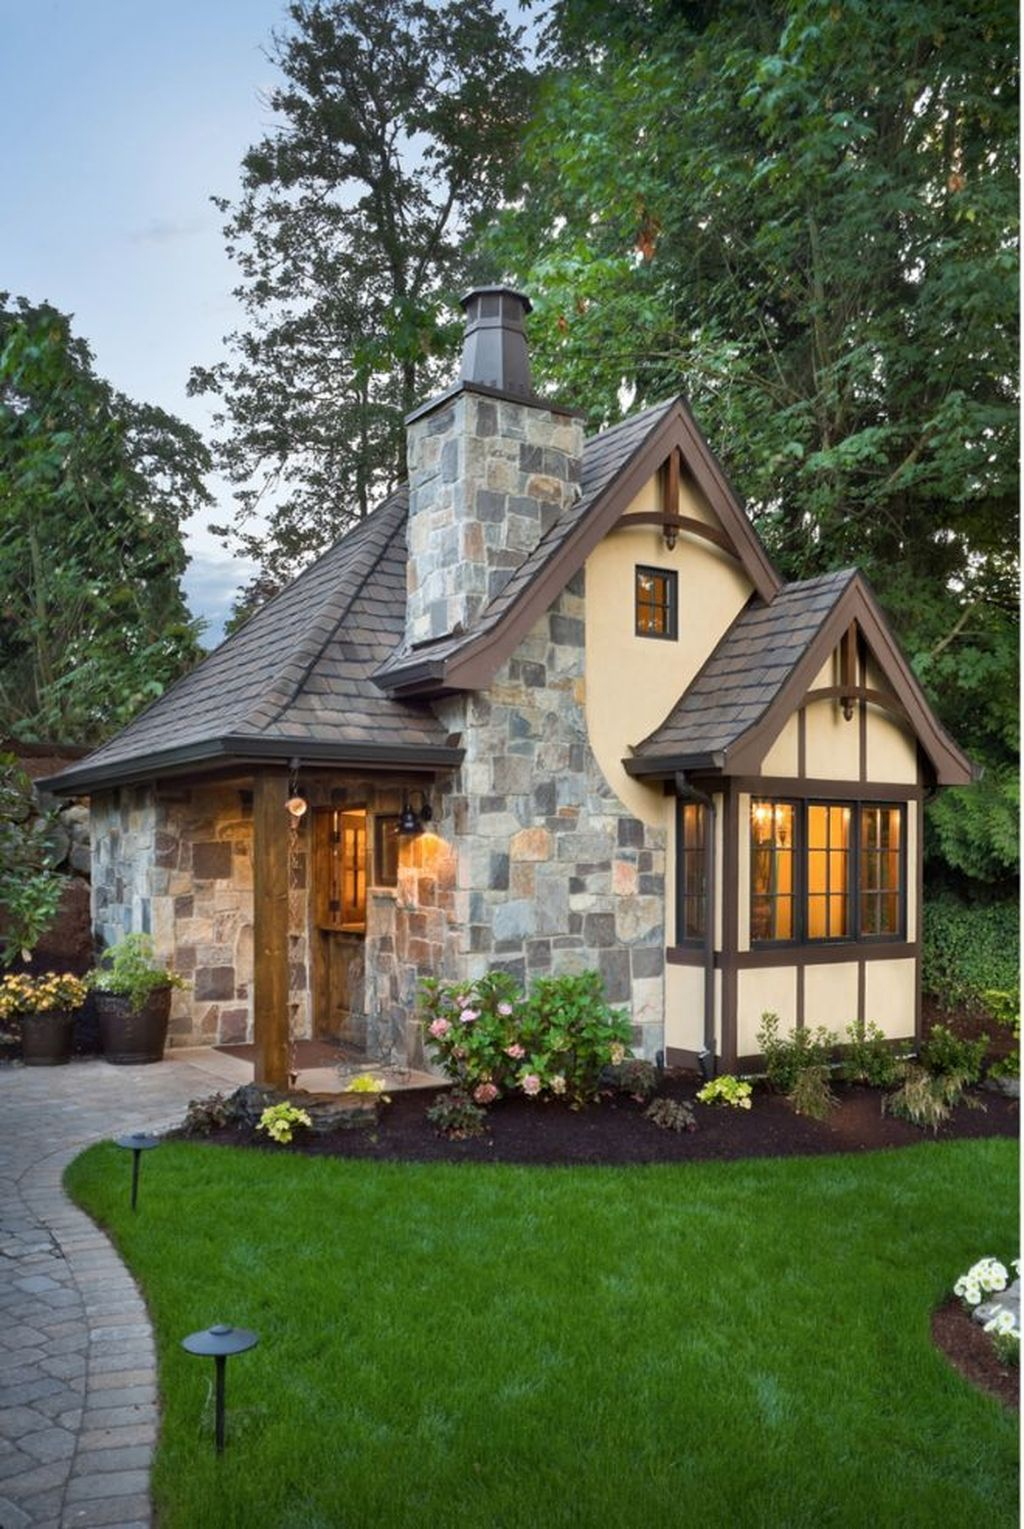 Perfect Small Cottages Design Ideas For Tiny House That Trend This Year 21